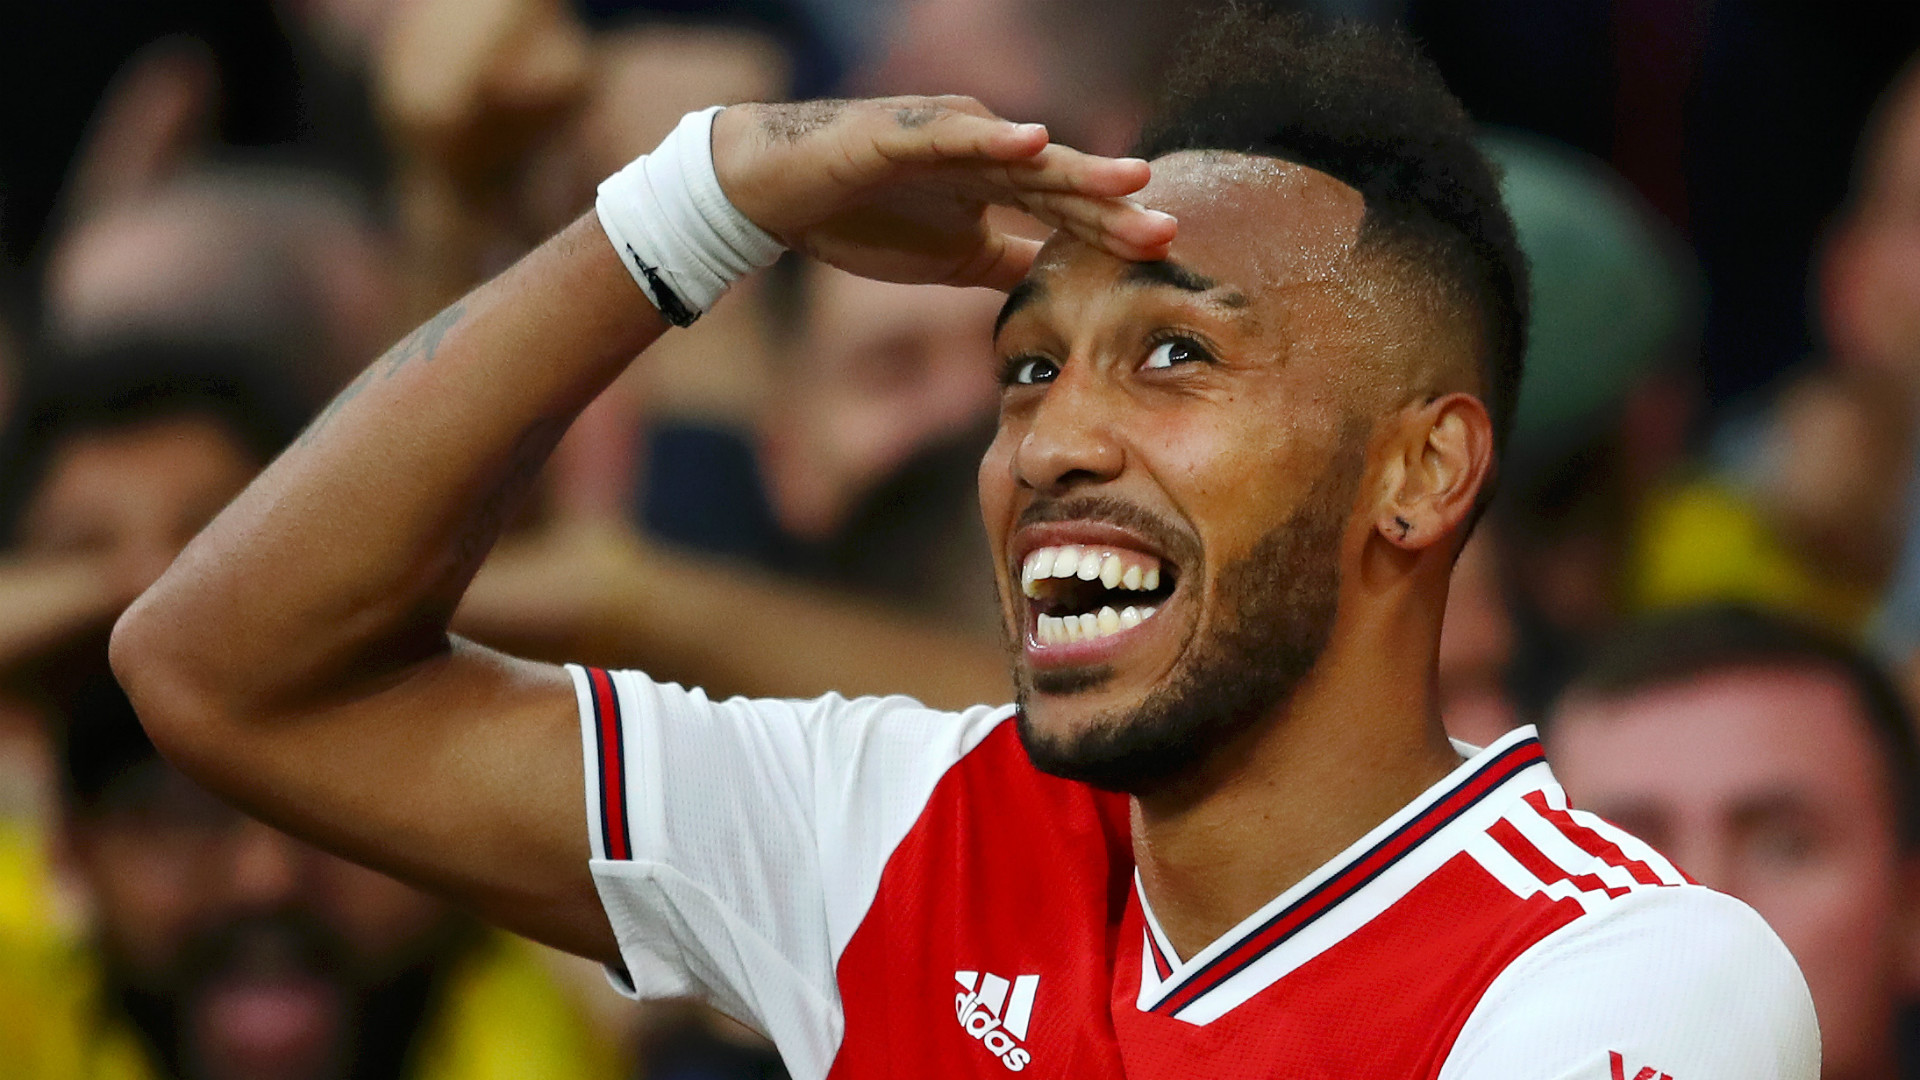 Aubameyang 'sure' Arsenal will finish in top four as his goals keep Gunners in the hunt